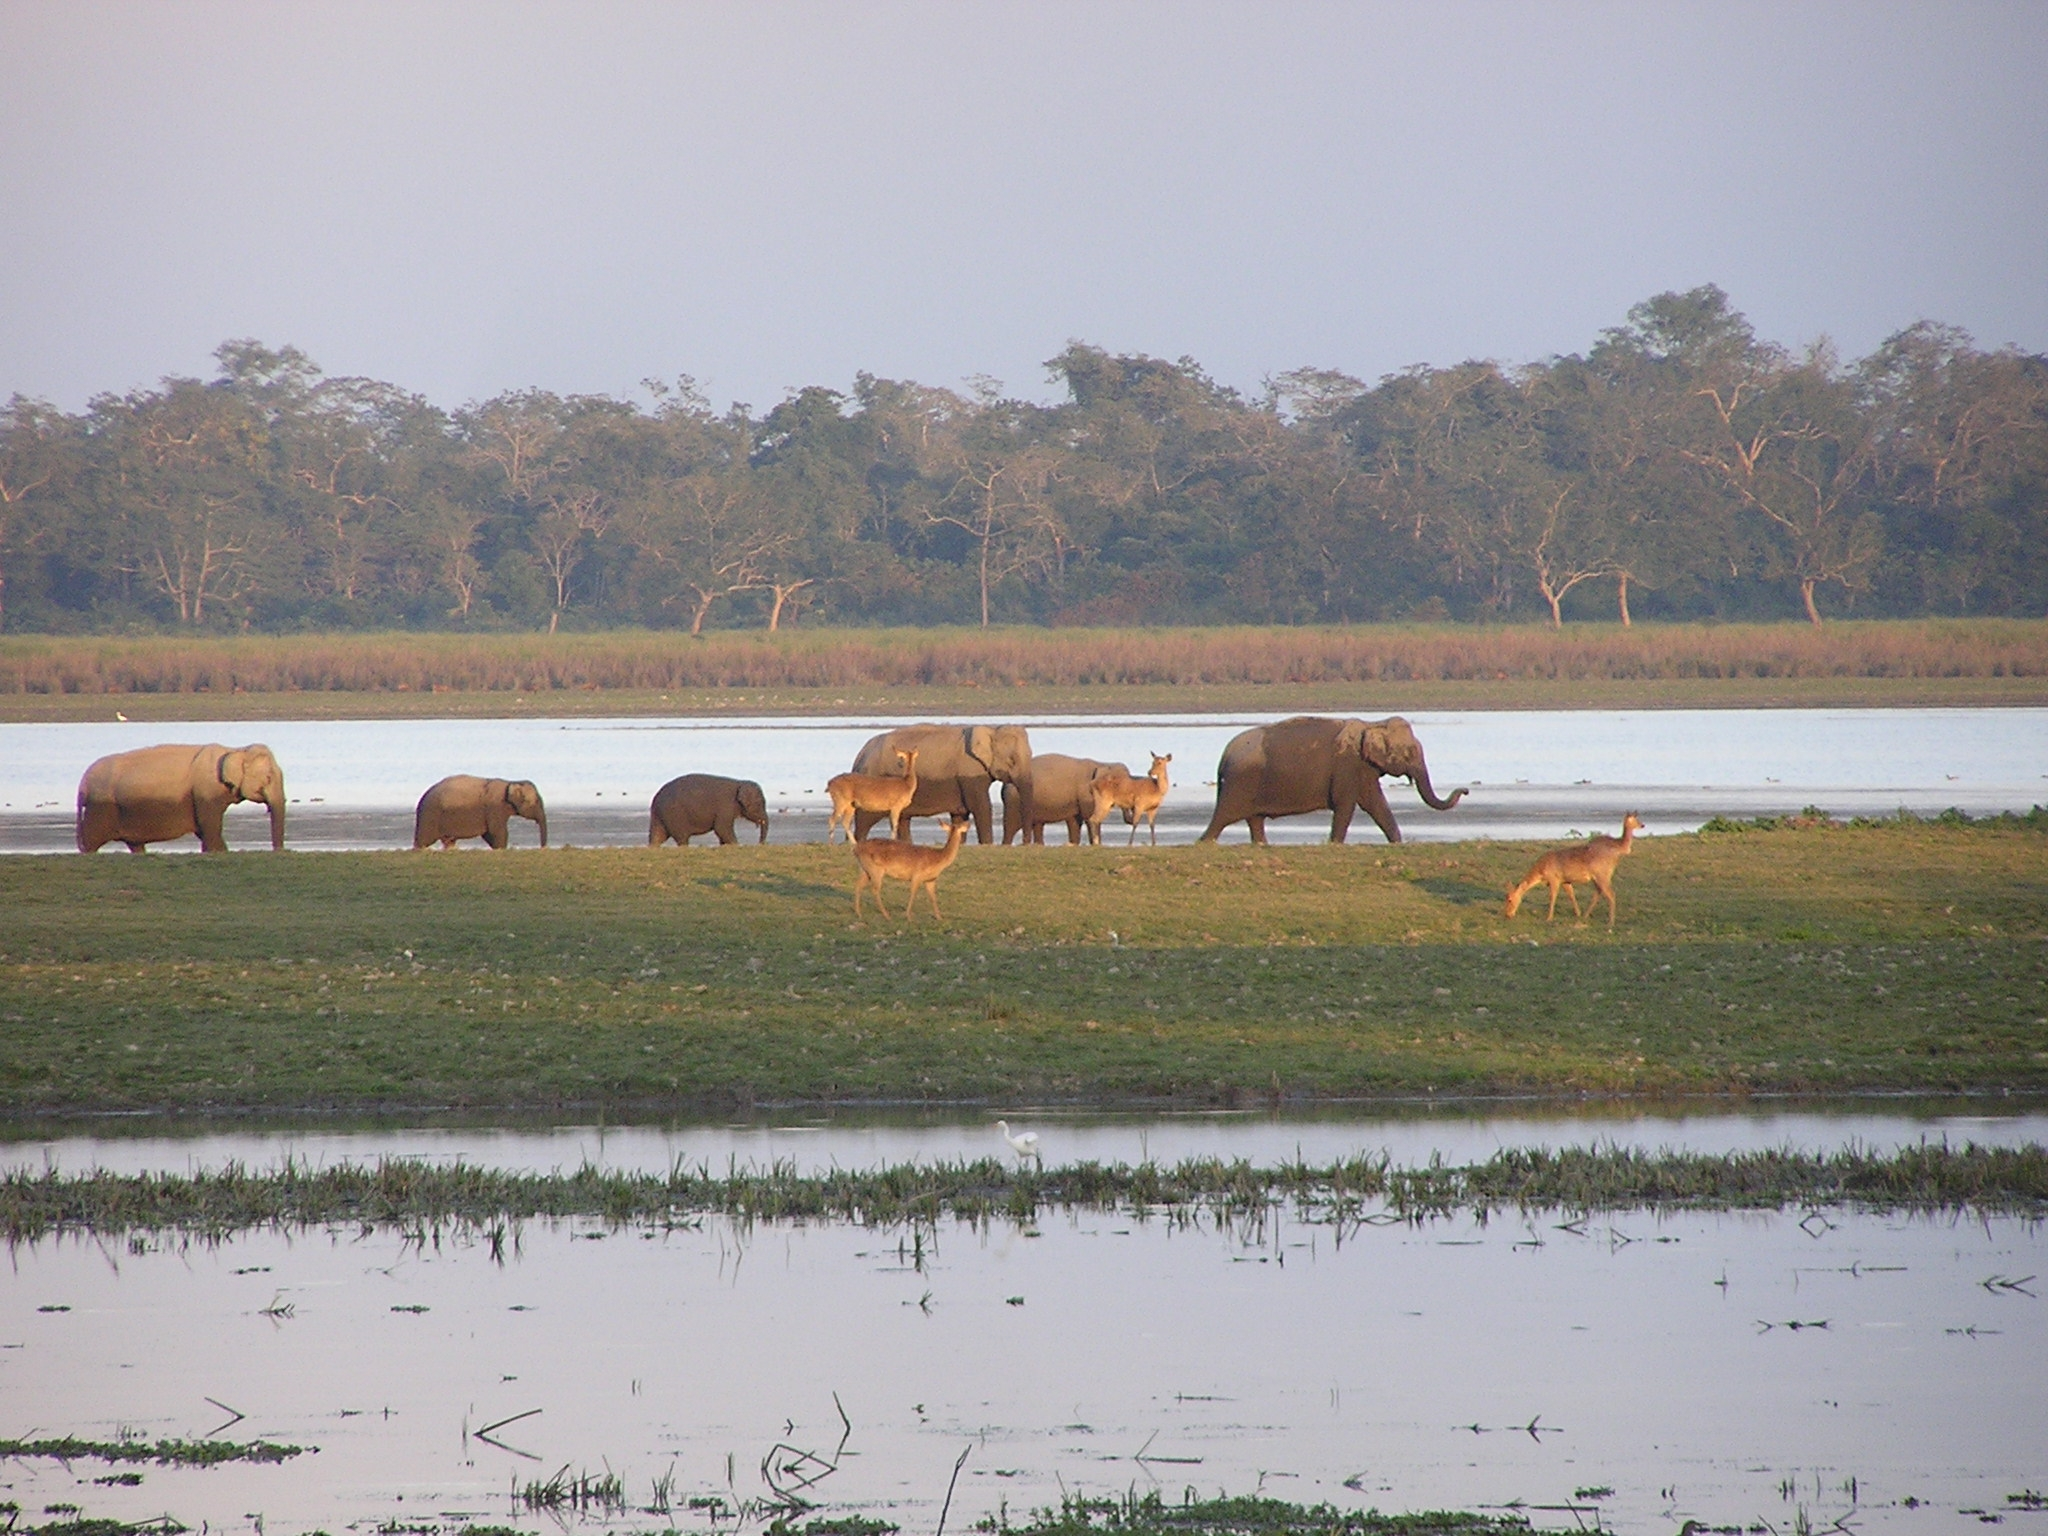 Elephants and Deer back in home at Dusk, African, Resource, South, Smiling, HQ Photo